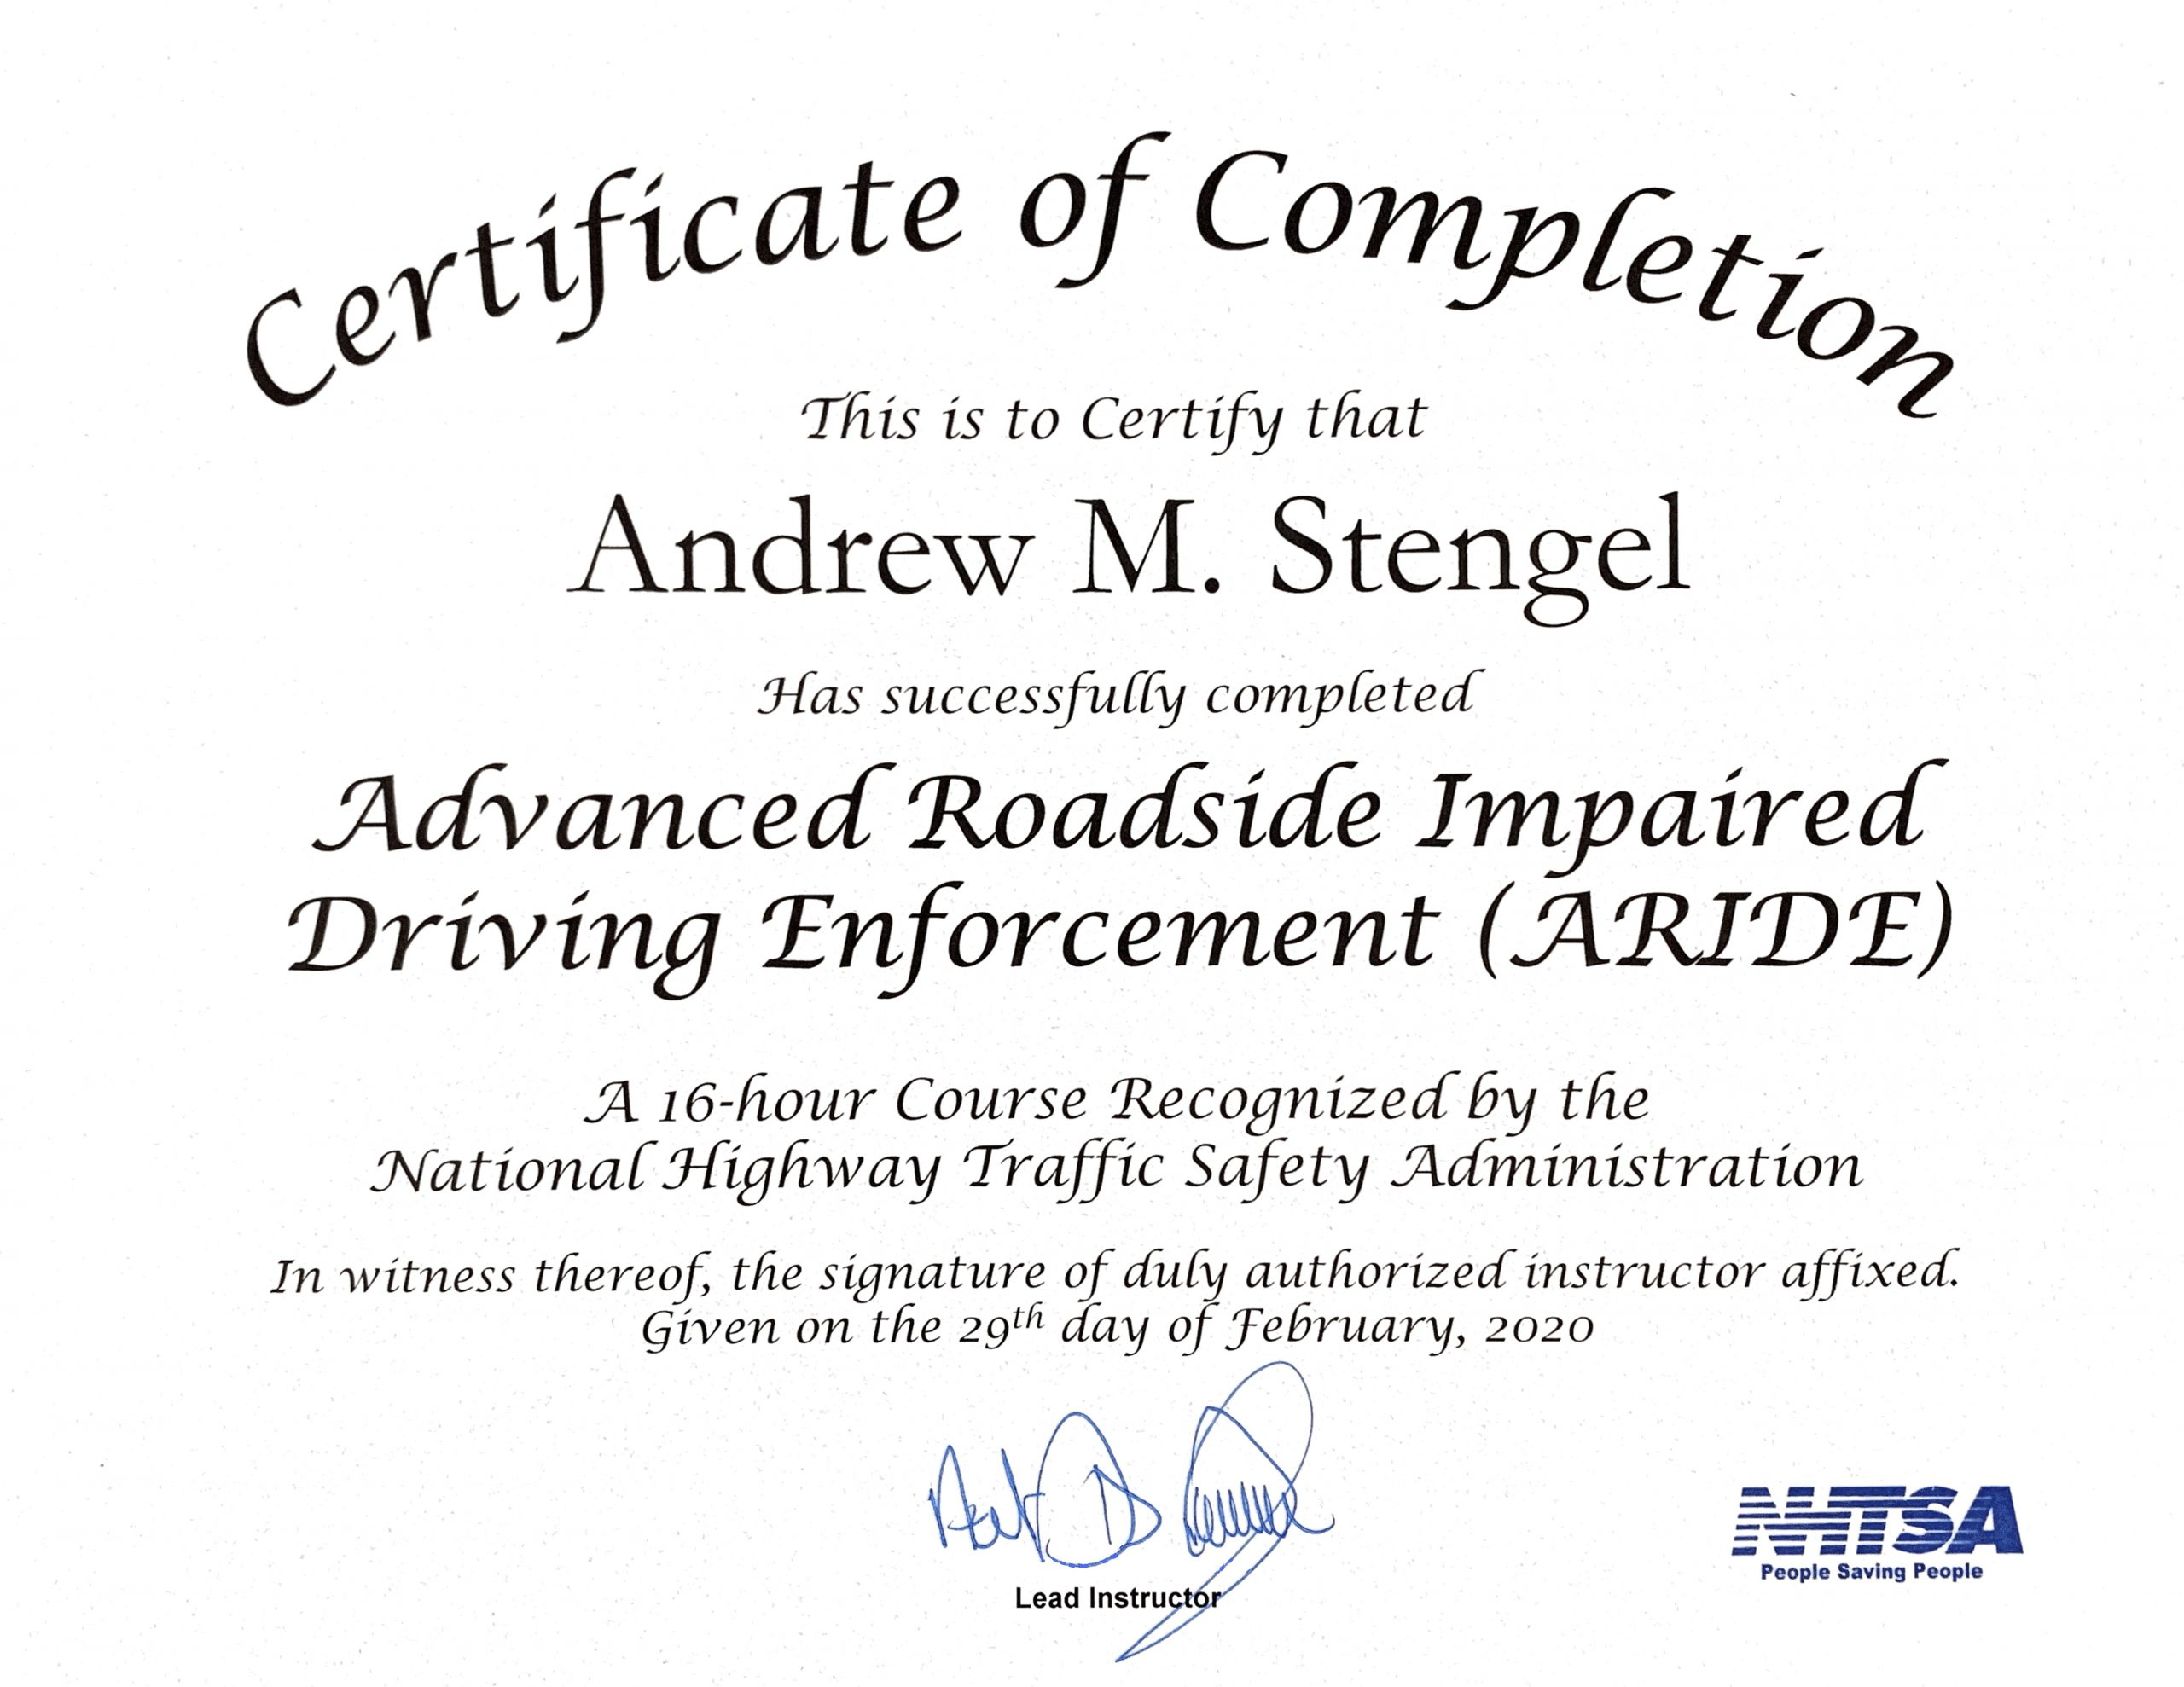 NYC DWI and DWI Drugs Advanced Roadside Impaired Enforcement (ARIDE) Certificate